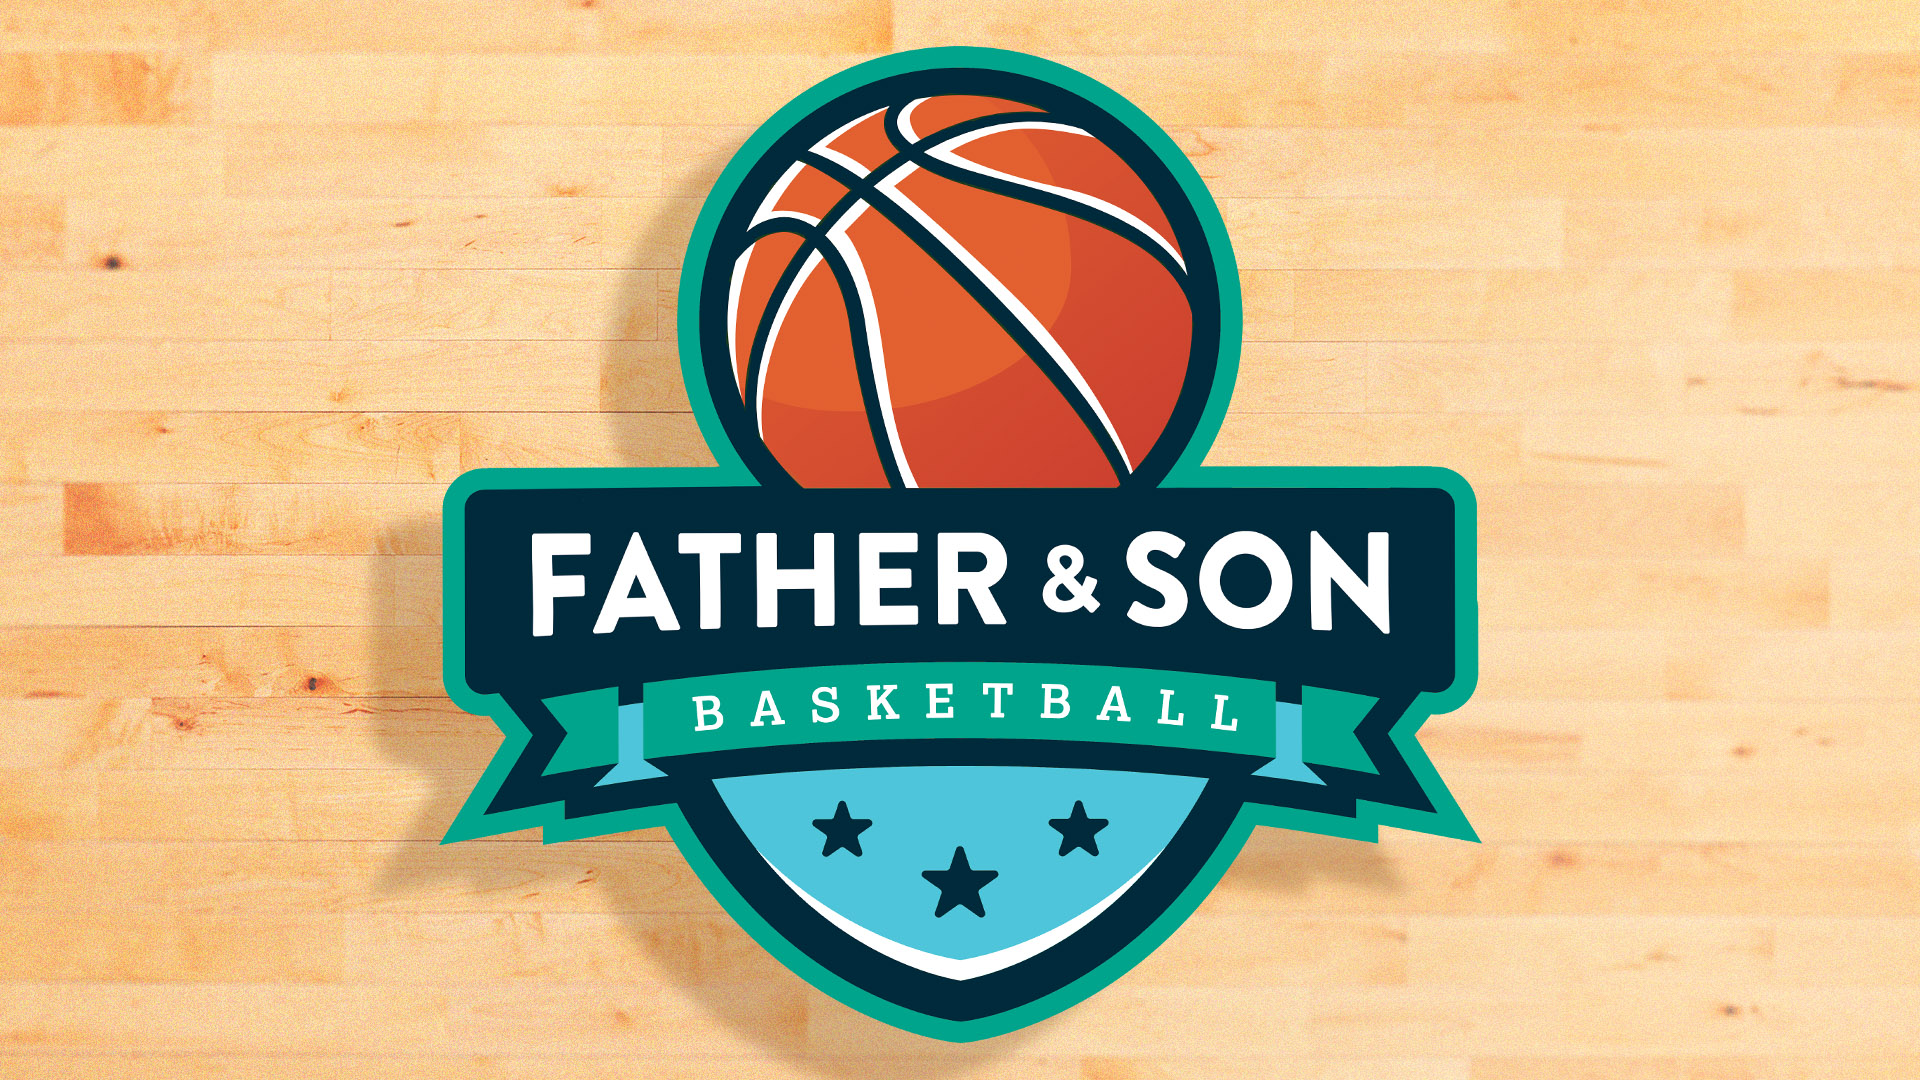 event-web-father-son-bball.jpg